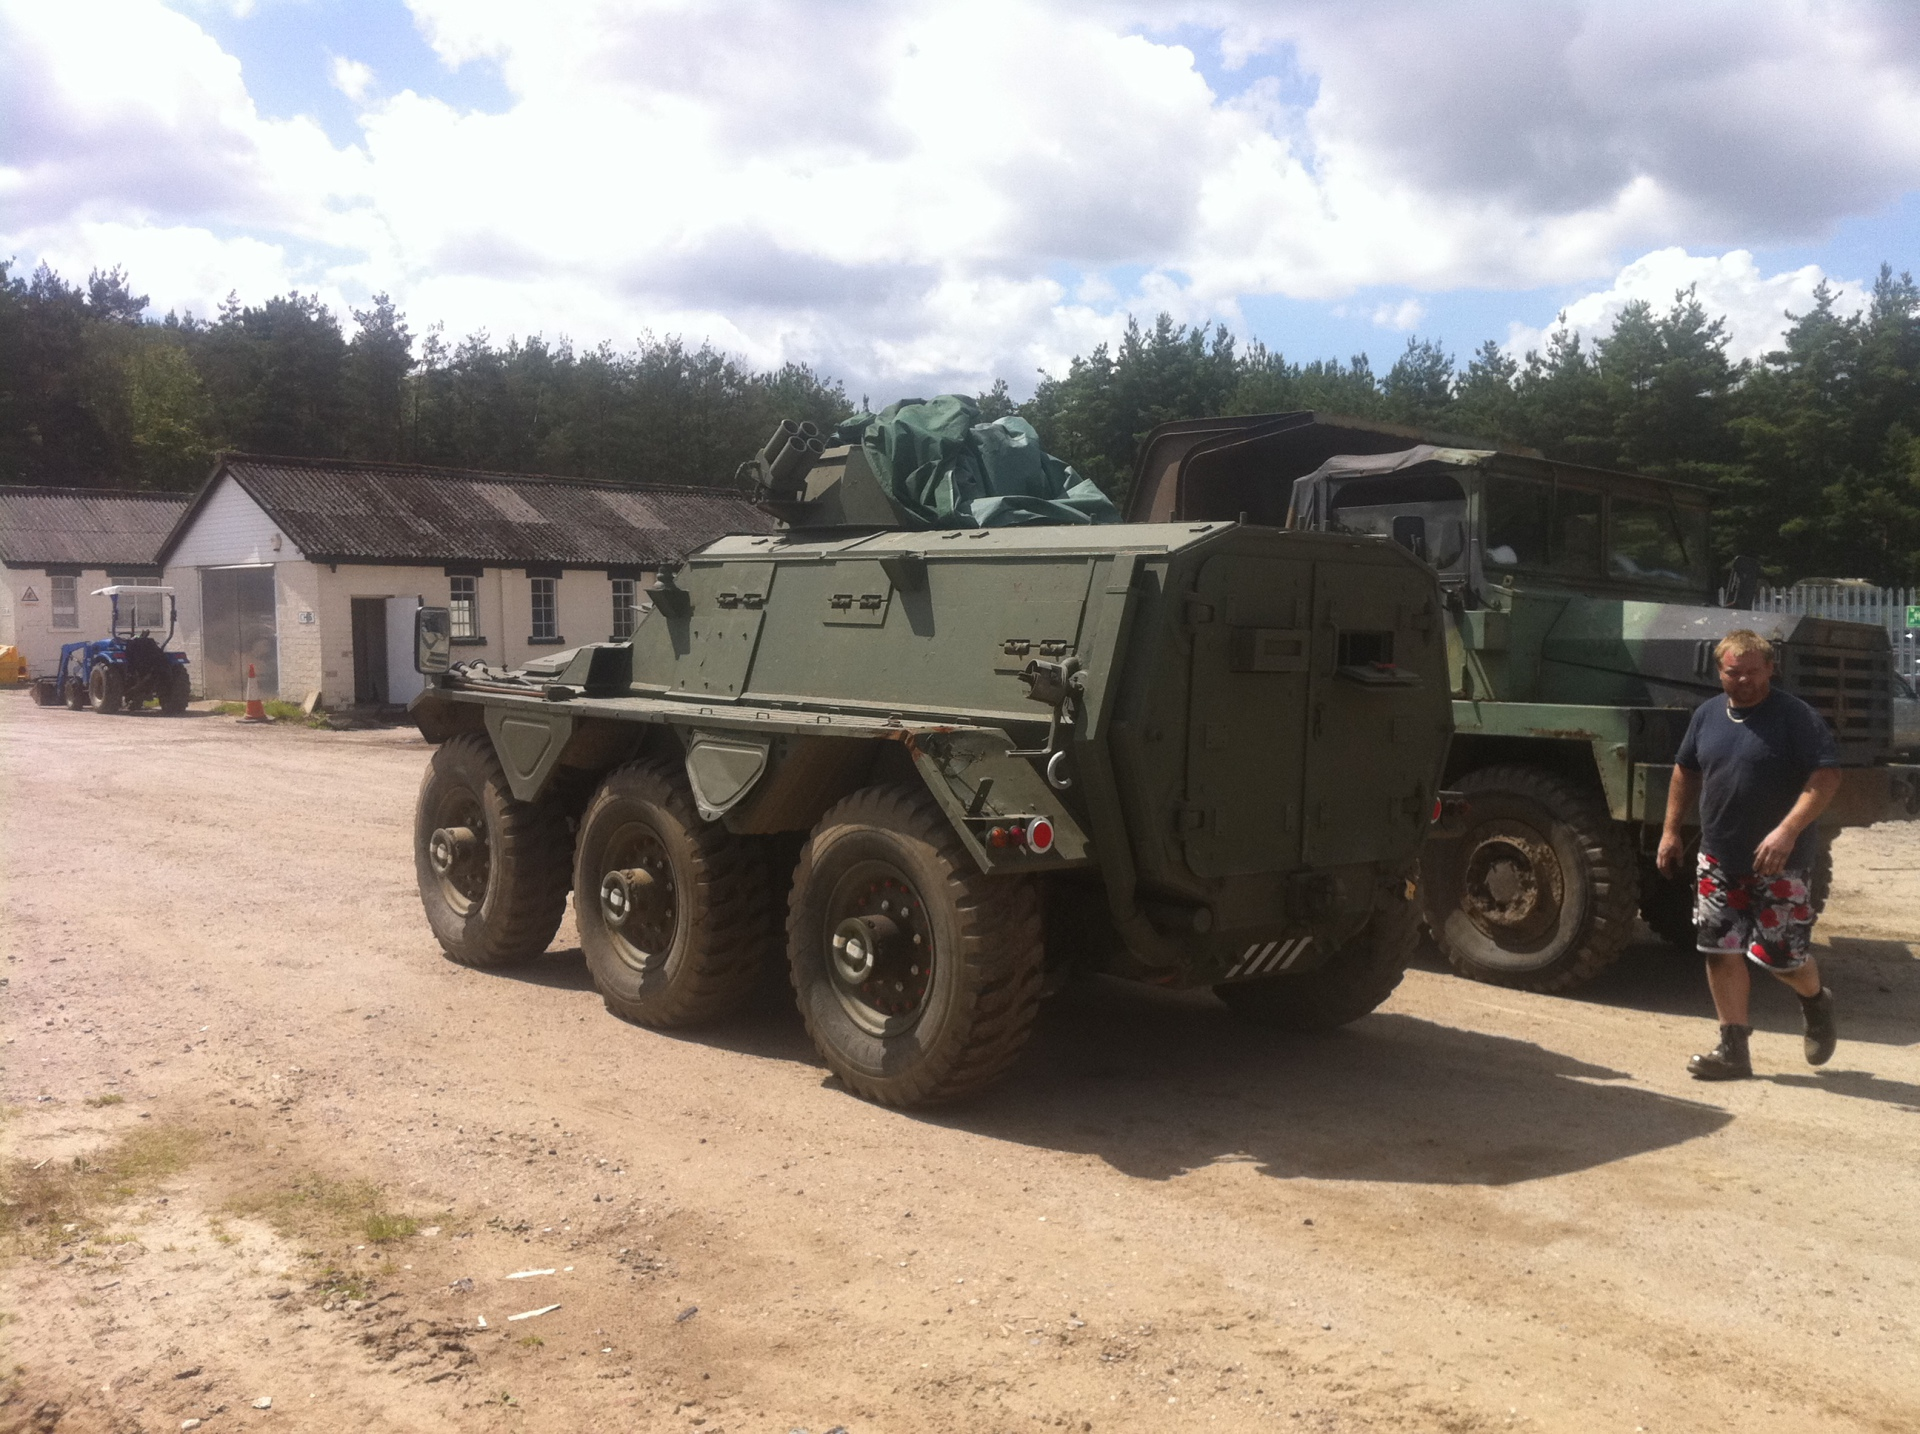 Saracen Alvis made FV603  one of the Alvis familiy of 6x6 drive vehicles including Stalwart, Saladin, Salmander